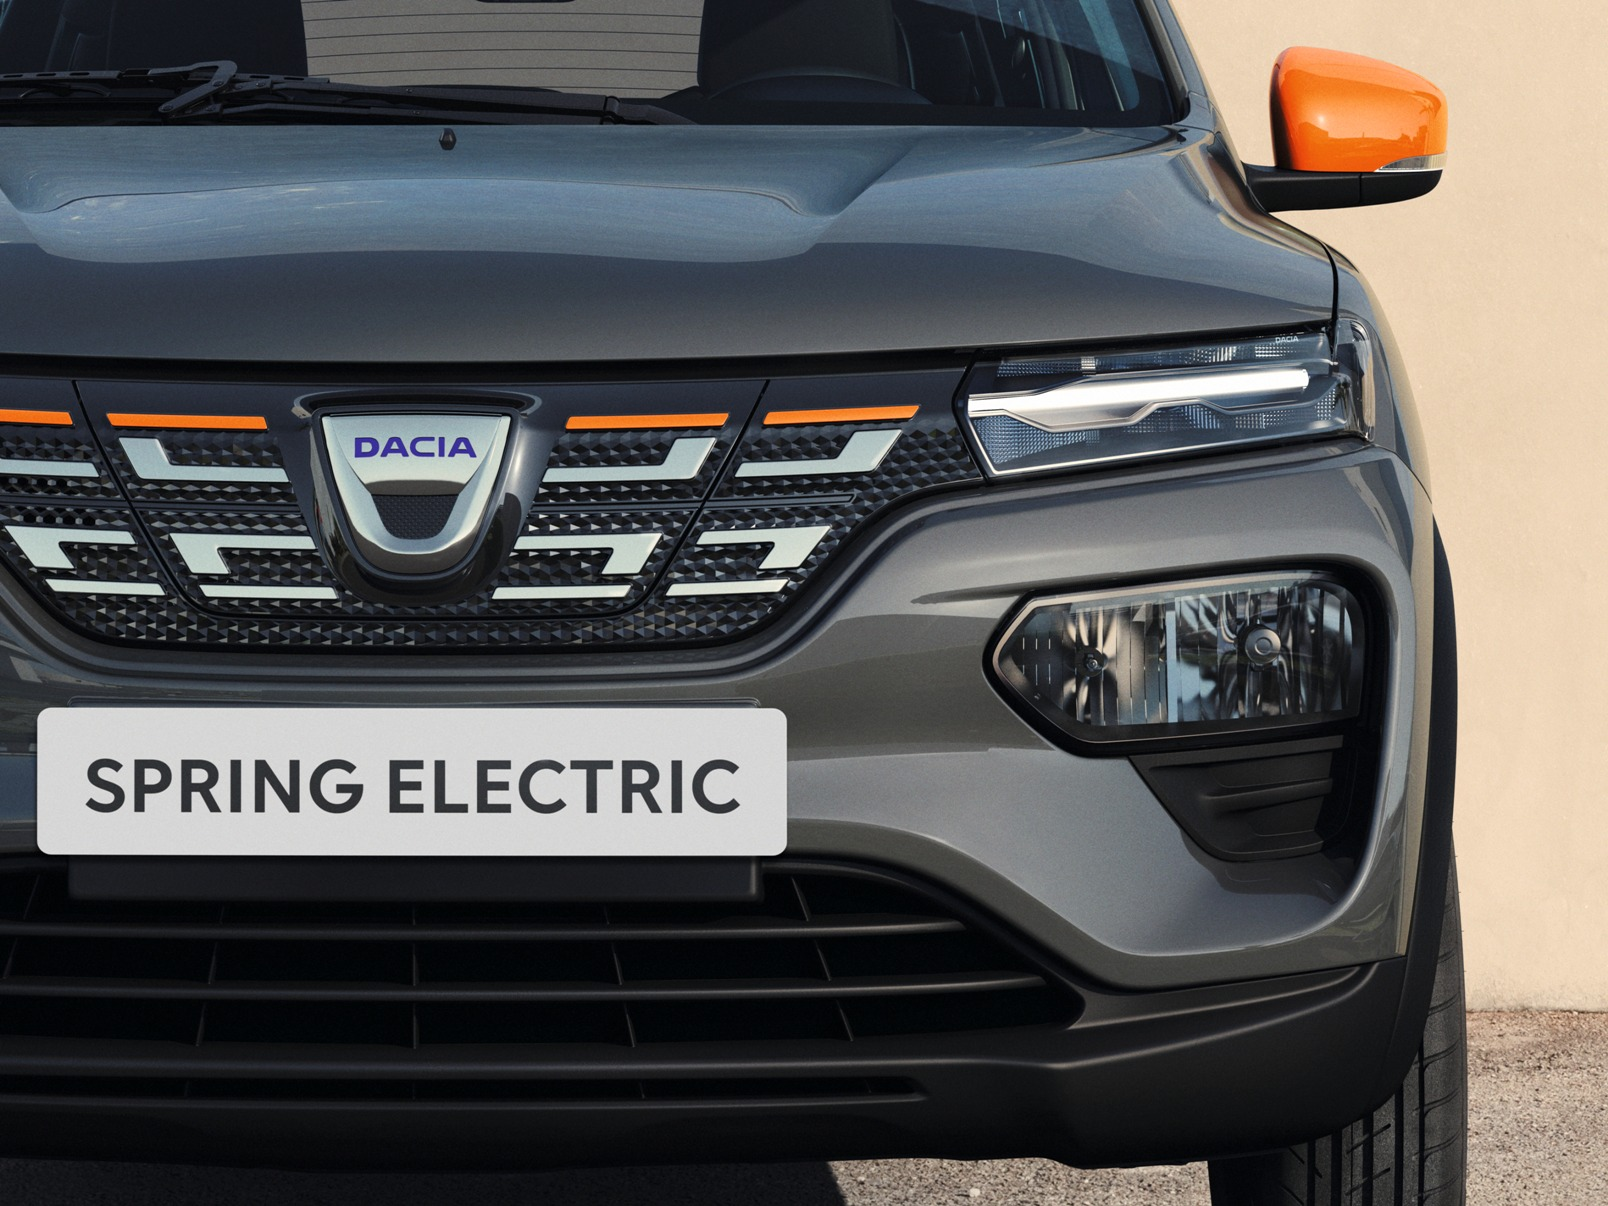 Dacia Spring Electric 2021 (3)